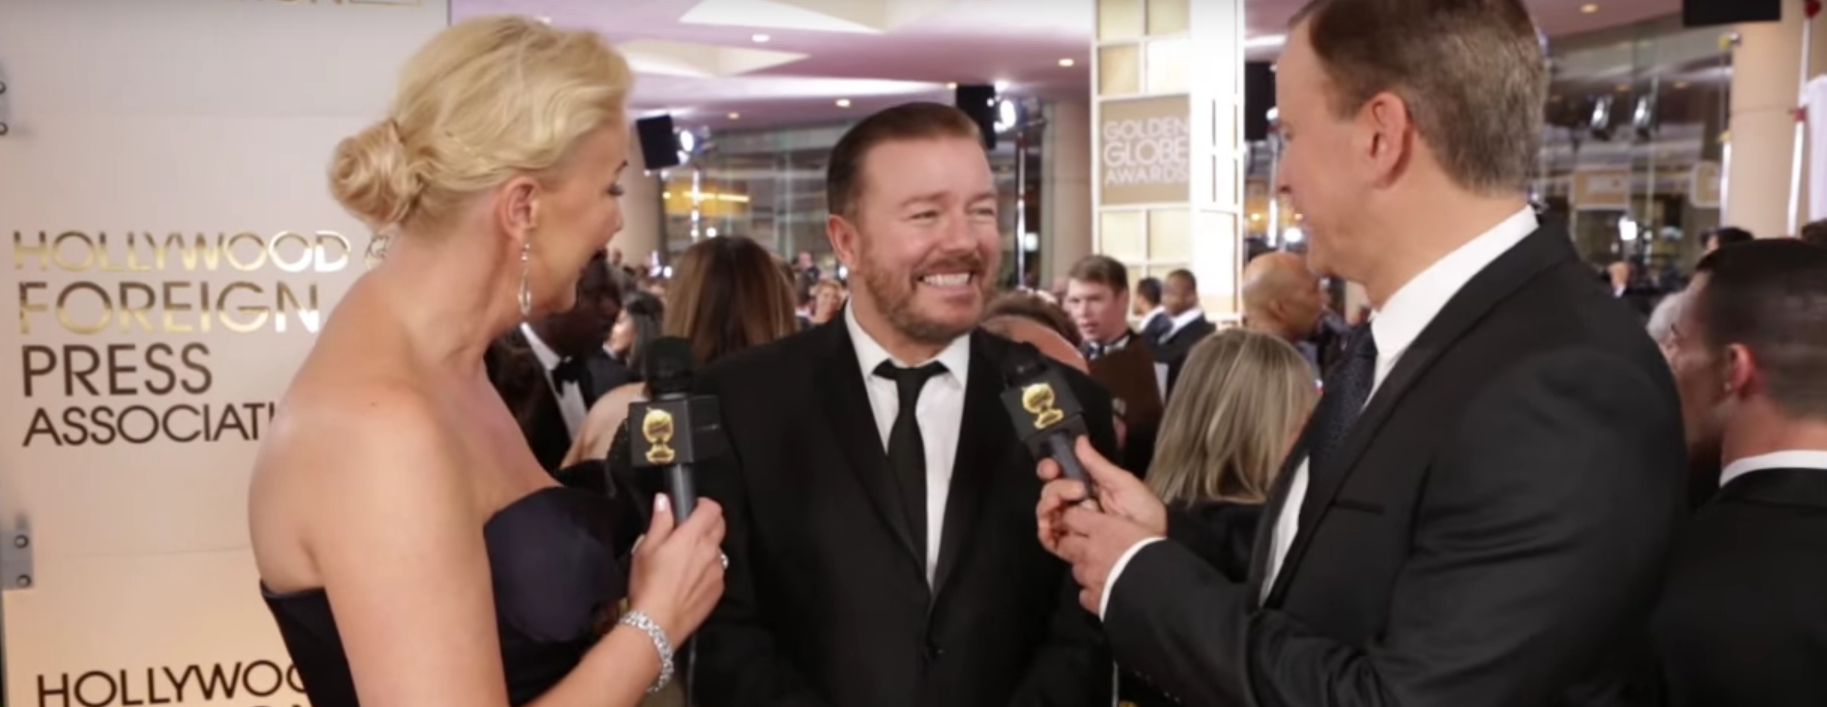 Ricky Gervais. Golden Globes / YouTube